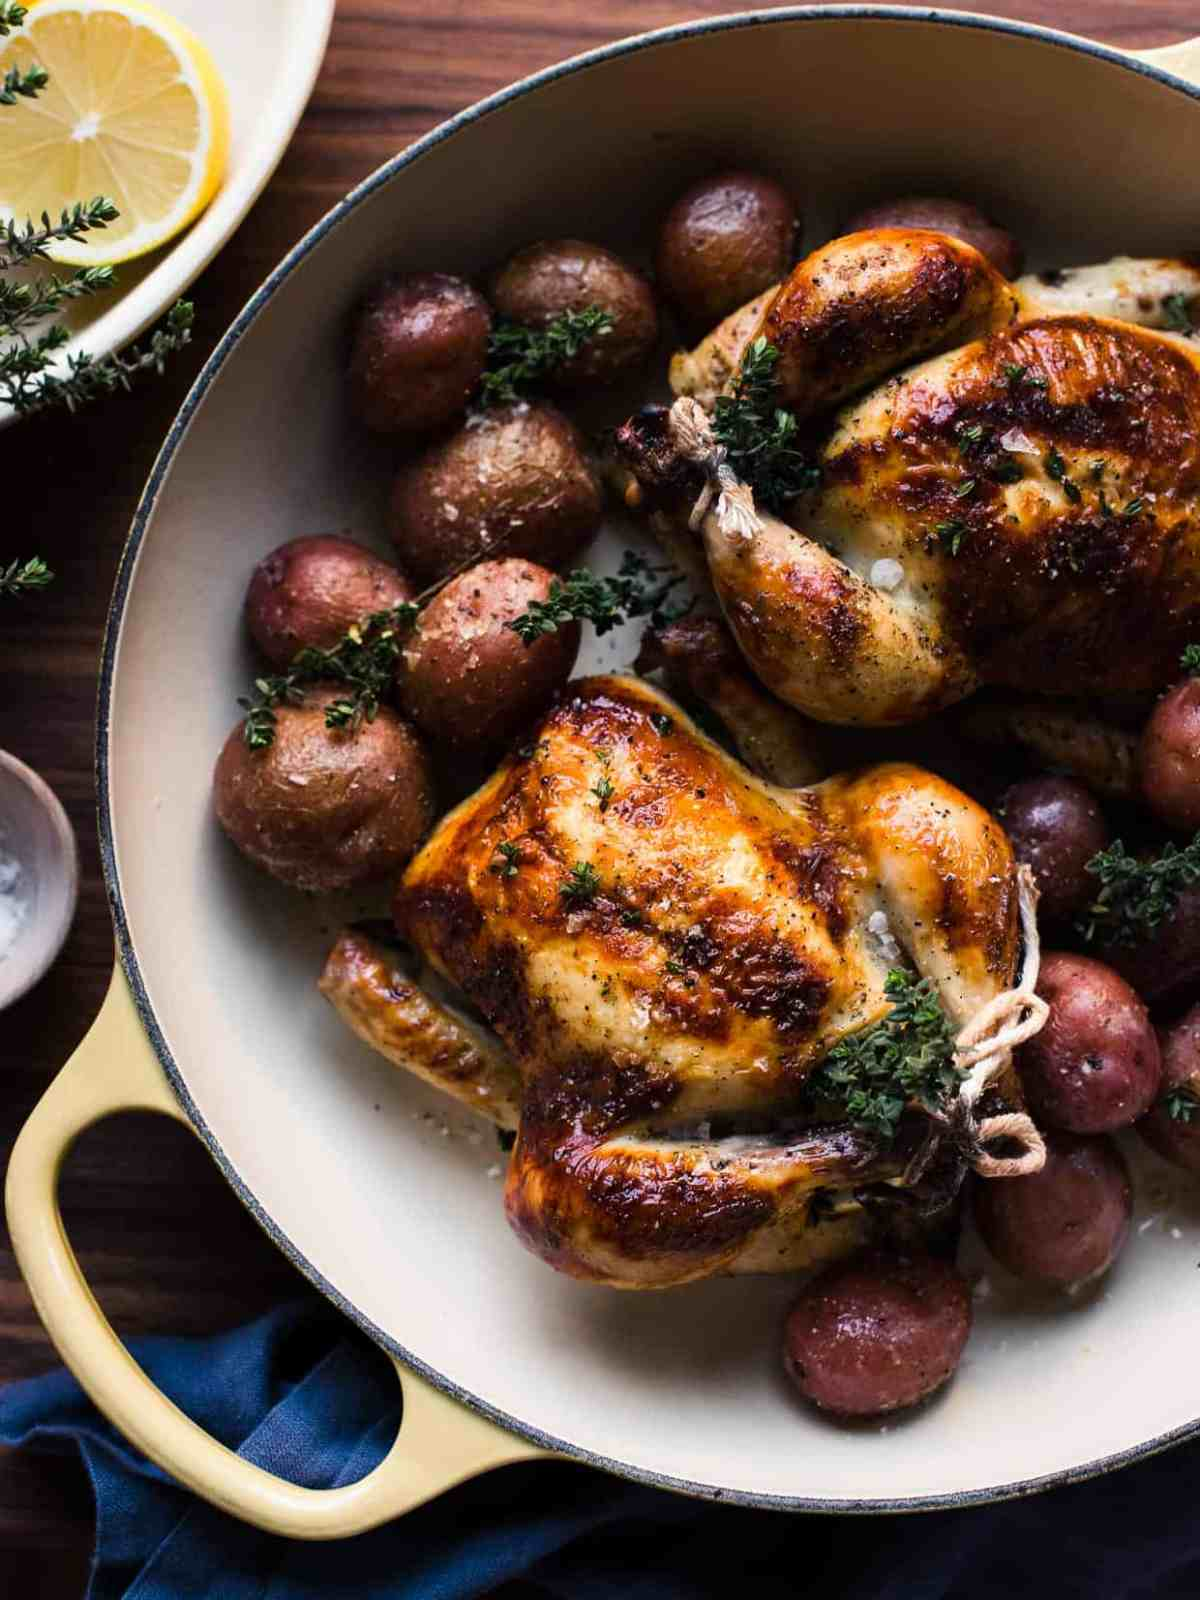 Roasted Buttermilk Brined Cornish Hens and red potatoes in a yellow handled pan.